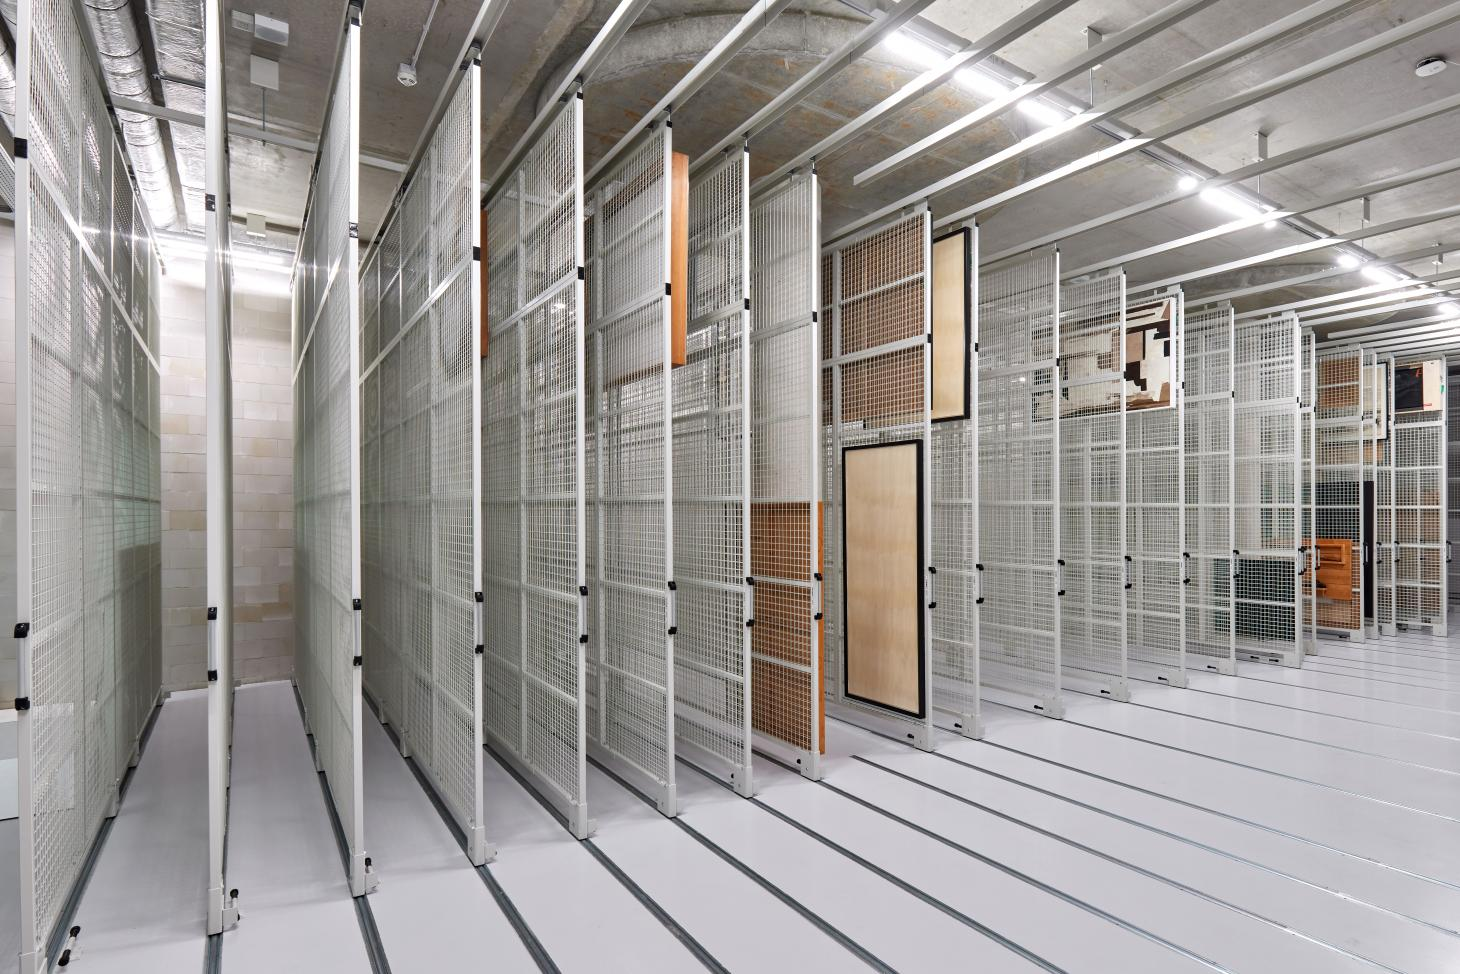 storage facilities at the new boijmans depot by mvddv